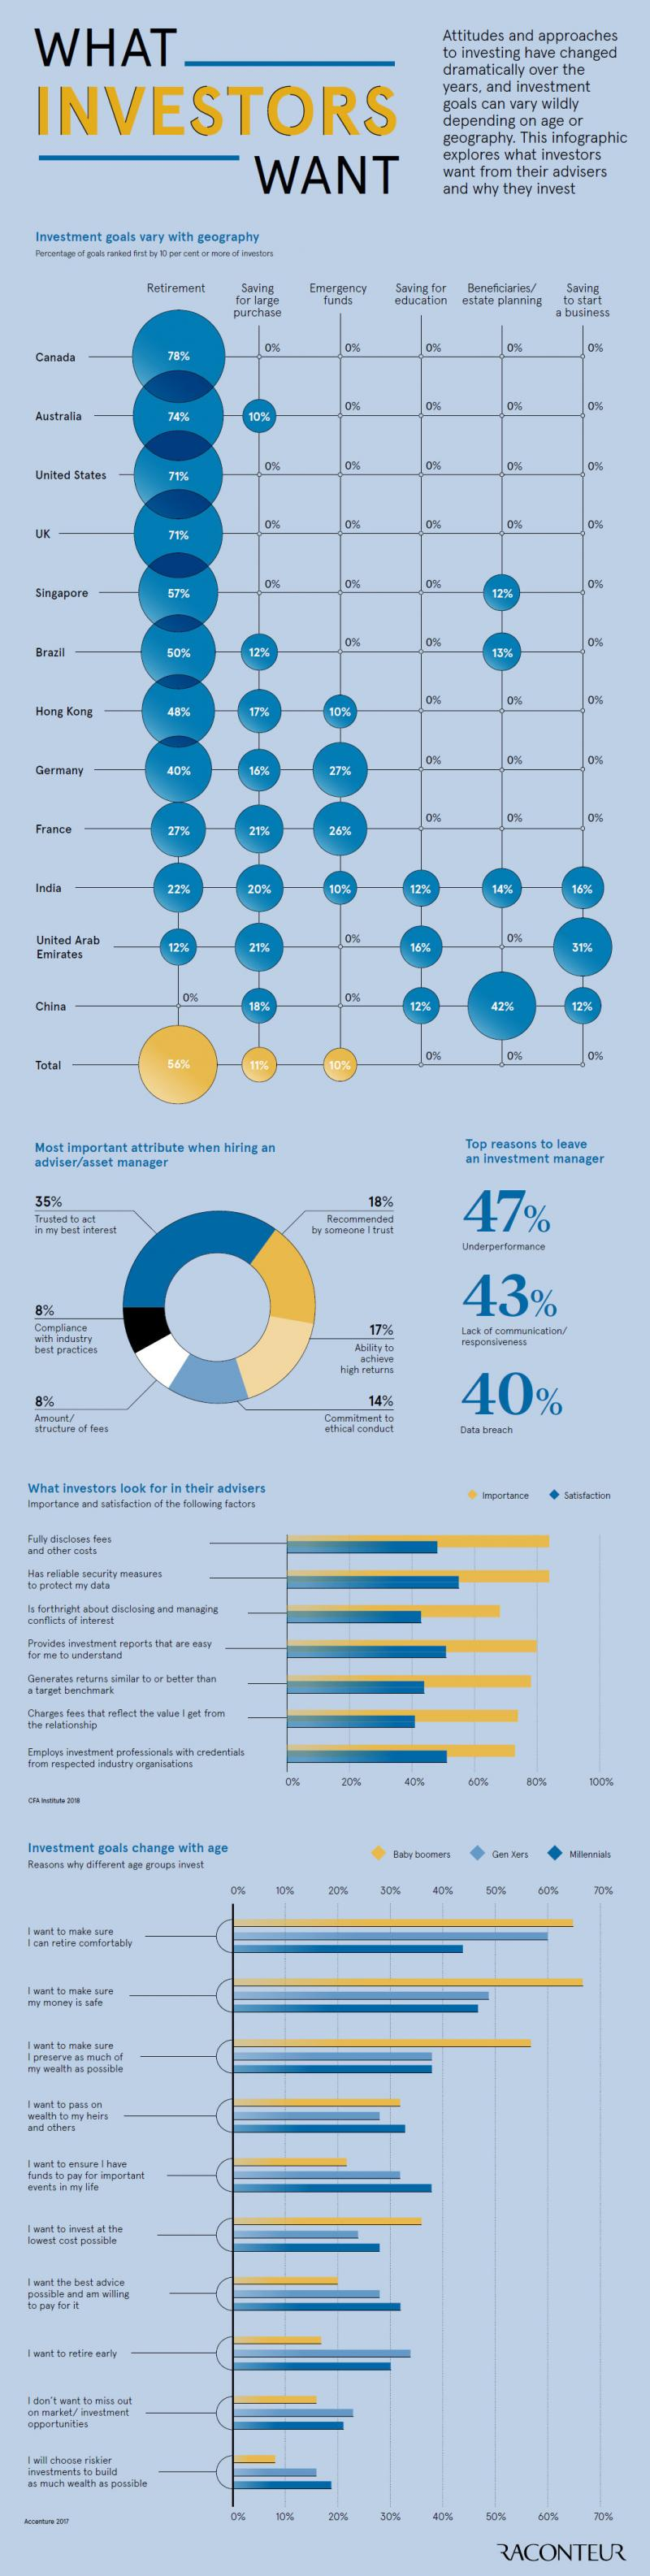 How Investment Goals Vary by Country and Age #Infographic